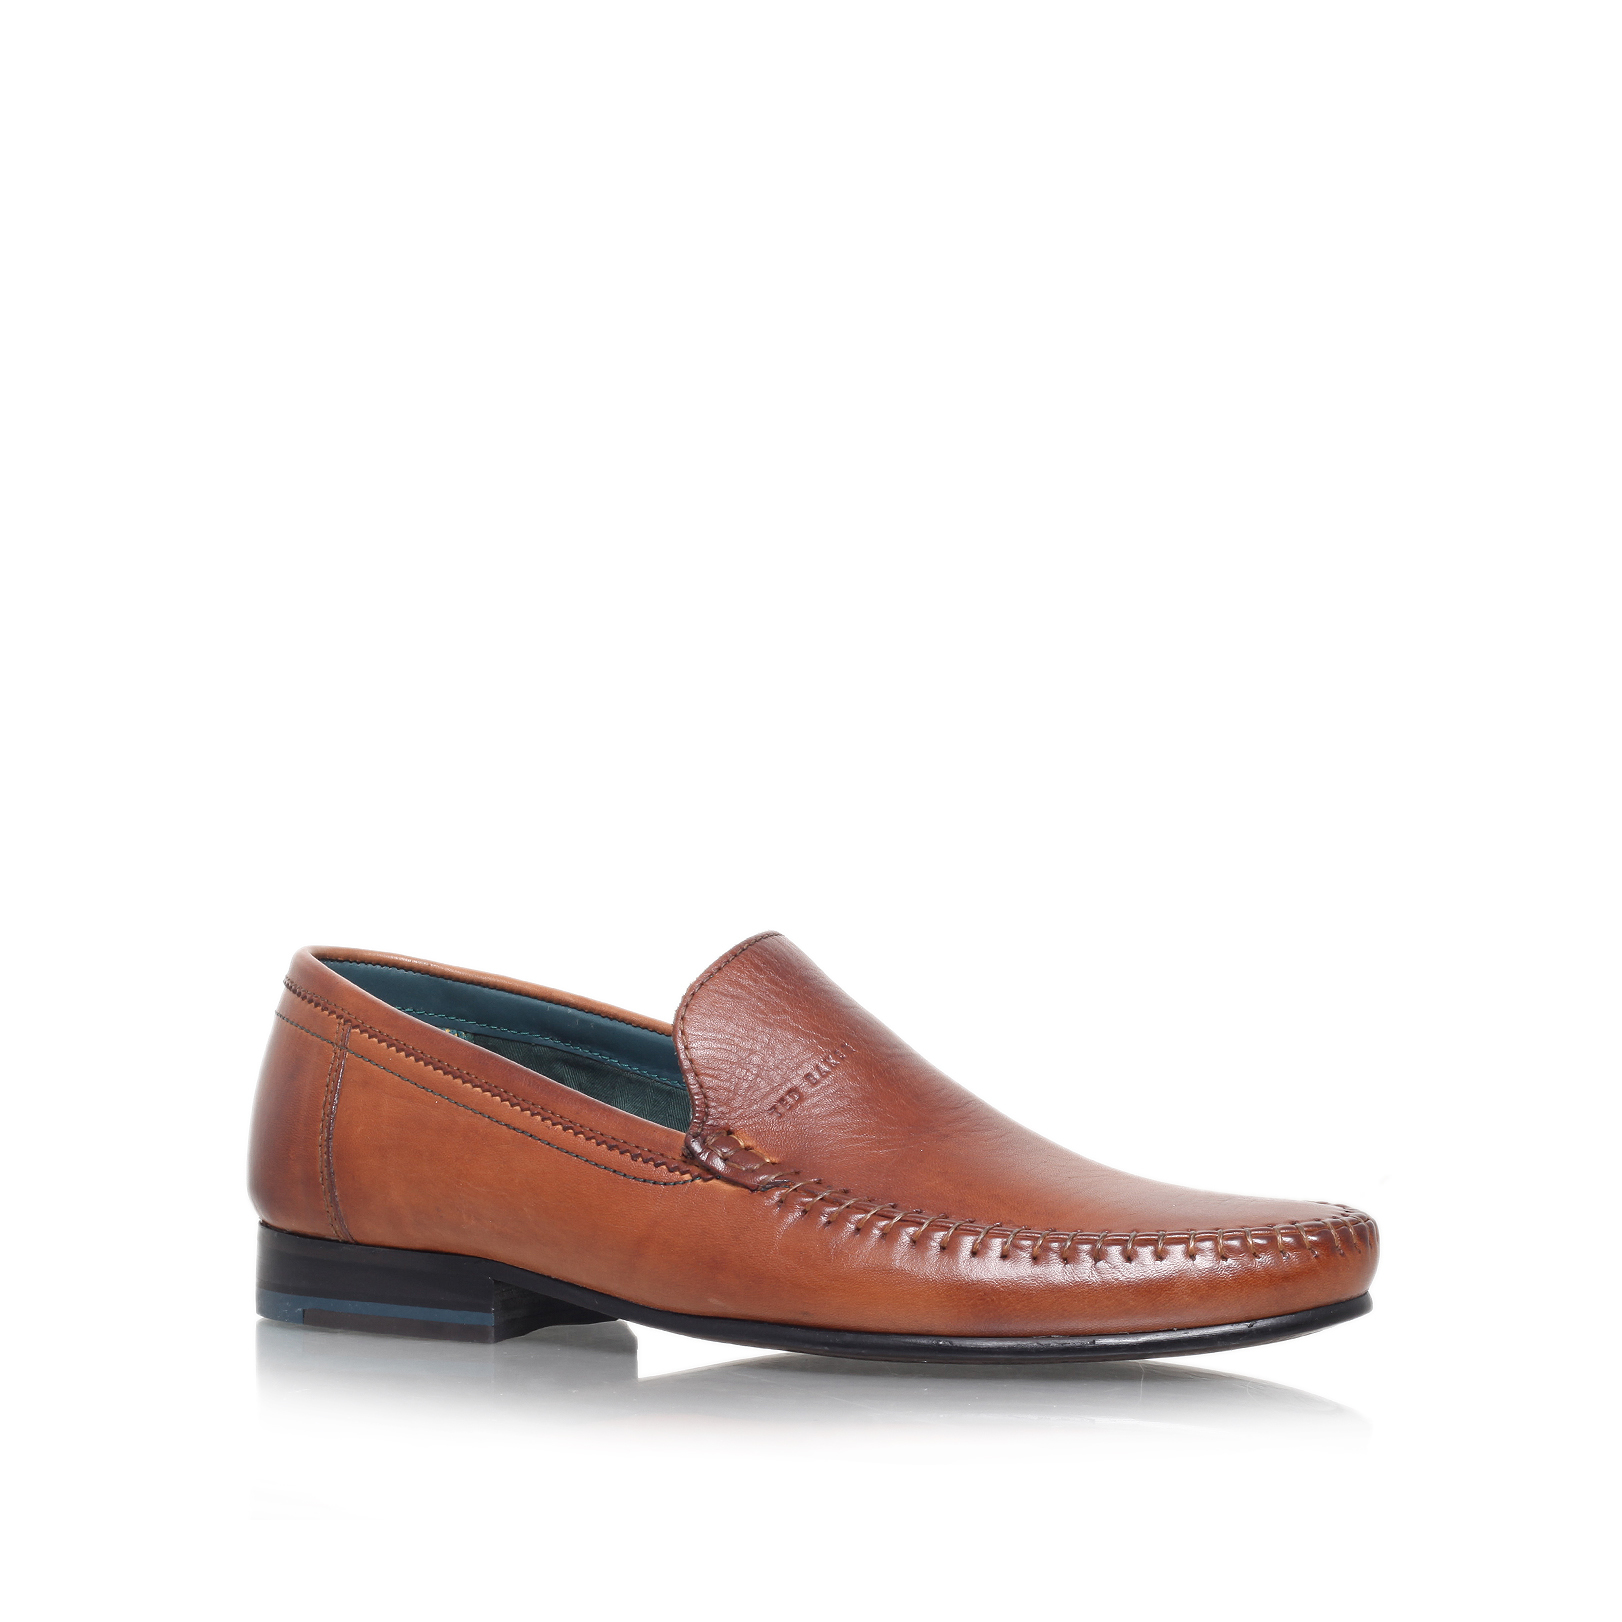 SIMEEN2 LOAFER